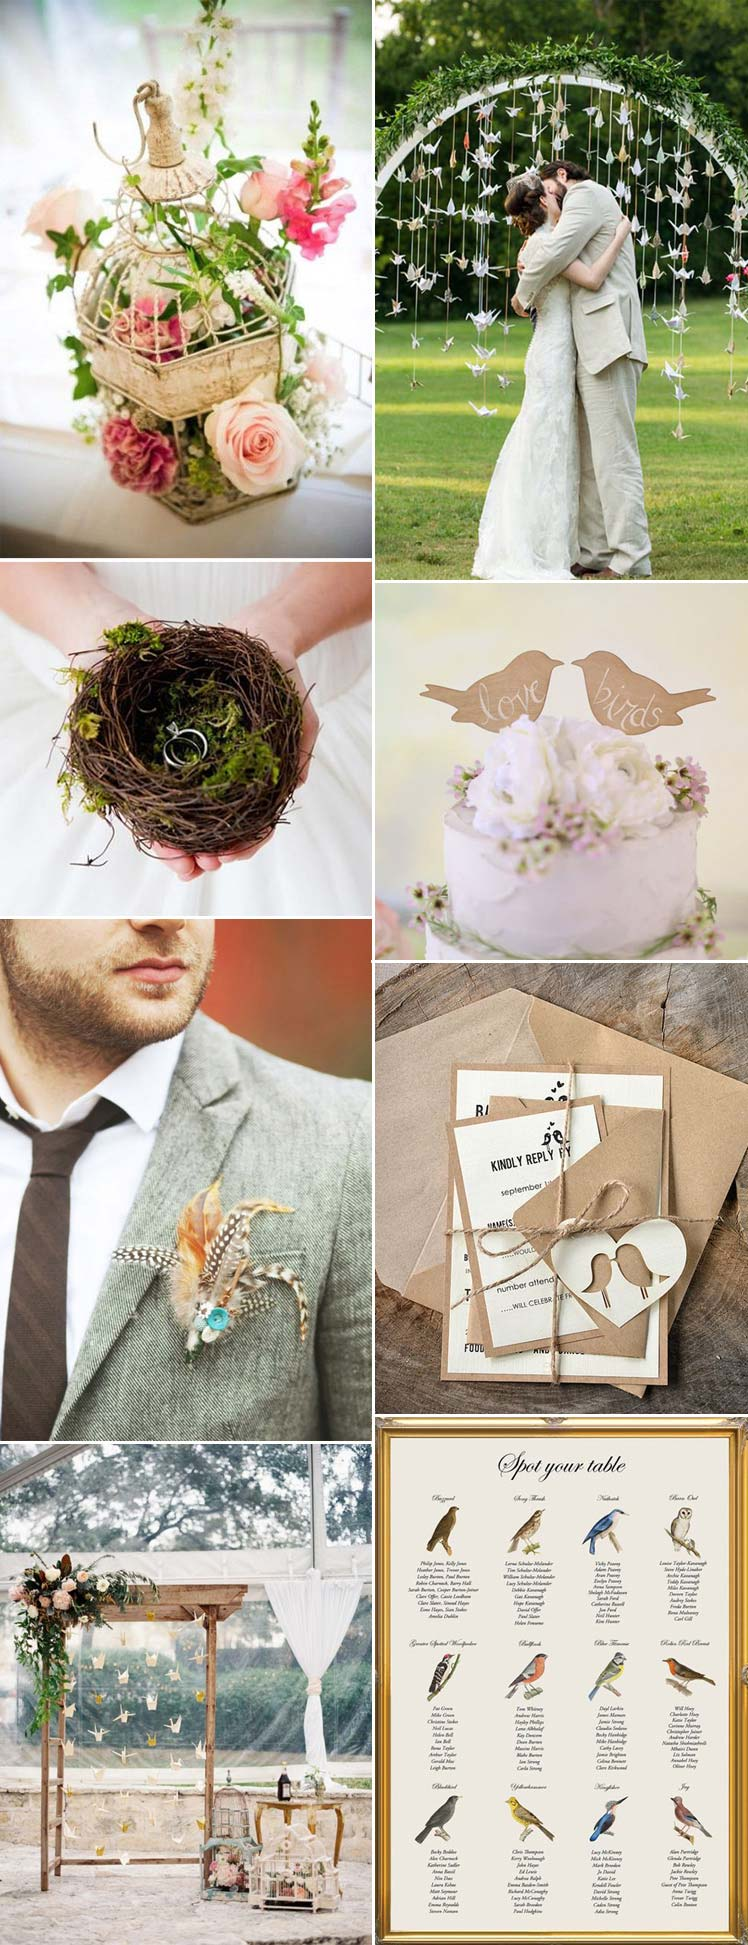 beautiful bird wedding theme